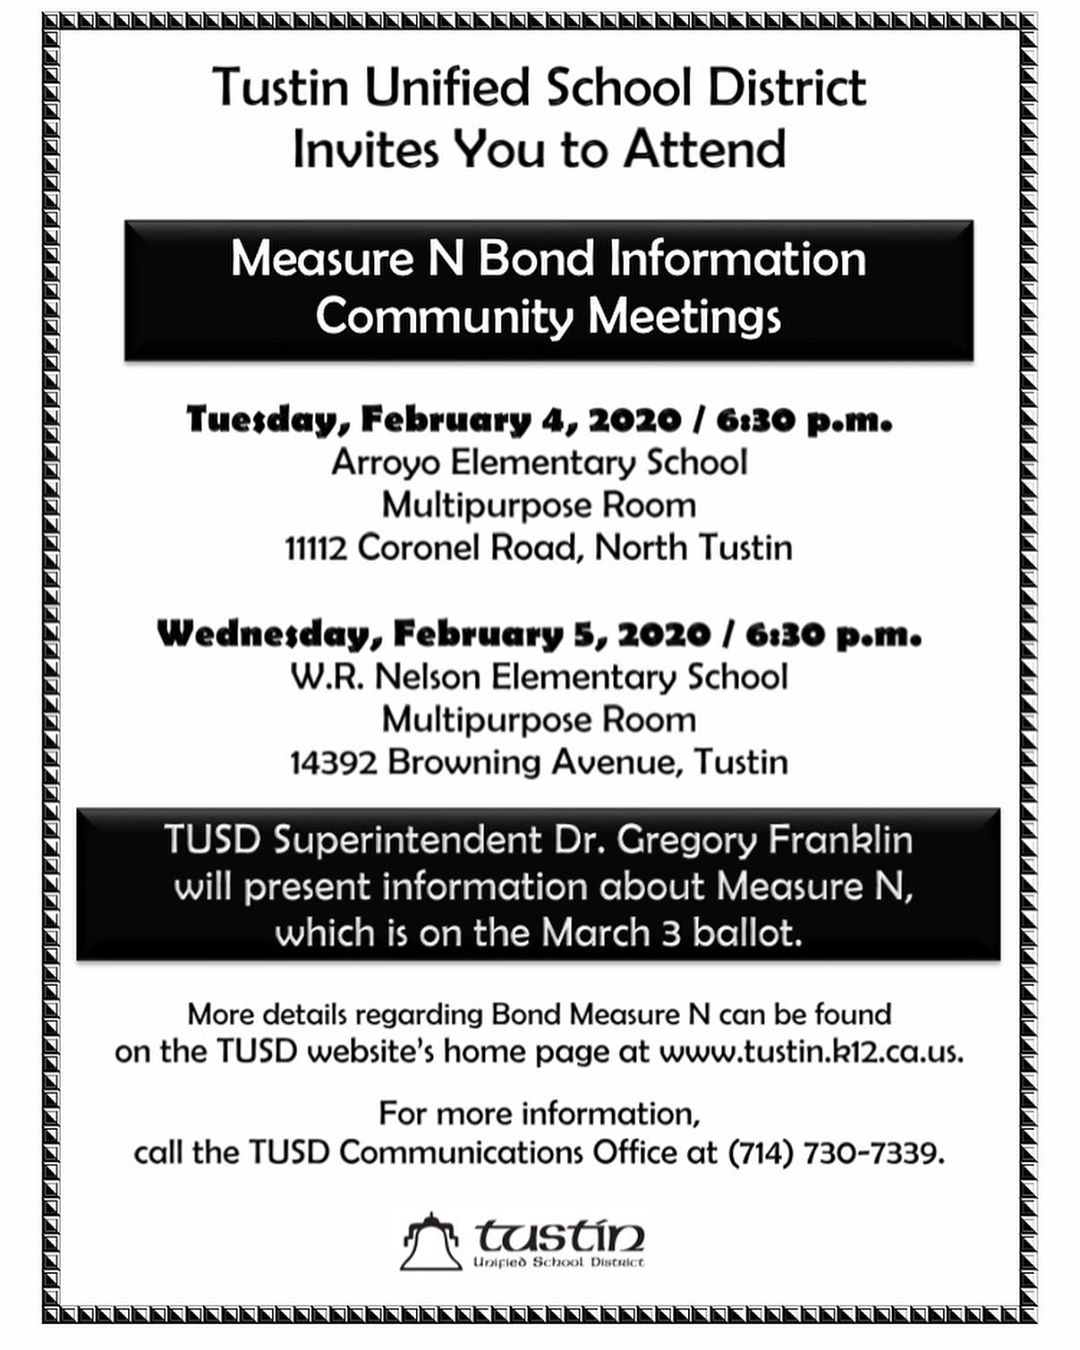 Measure N Community Meeting, Tuesday Feb 4 at 6:30 p.m. At Arroyo Elementary  and Wednesday Feb 5 at 630 at Nelson Elementary